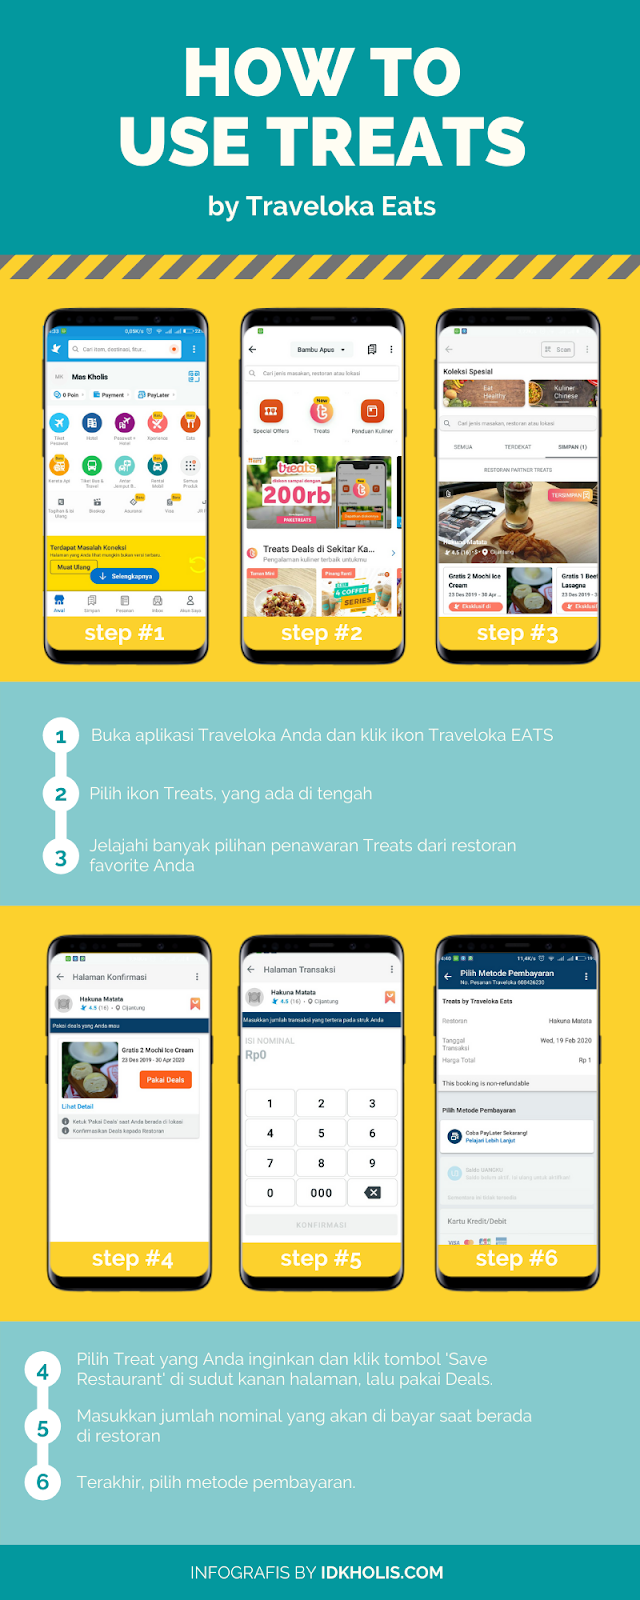 Cara Menggunakan Treats by Traveloka Eats